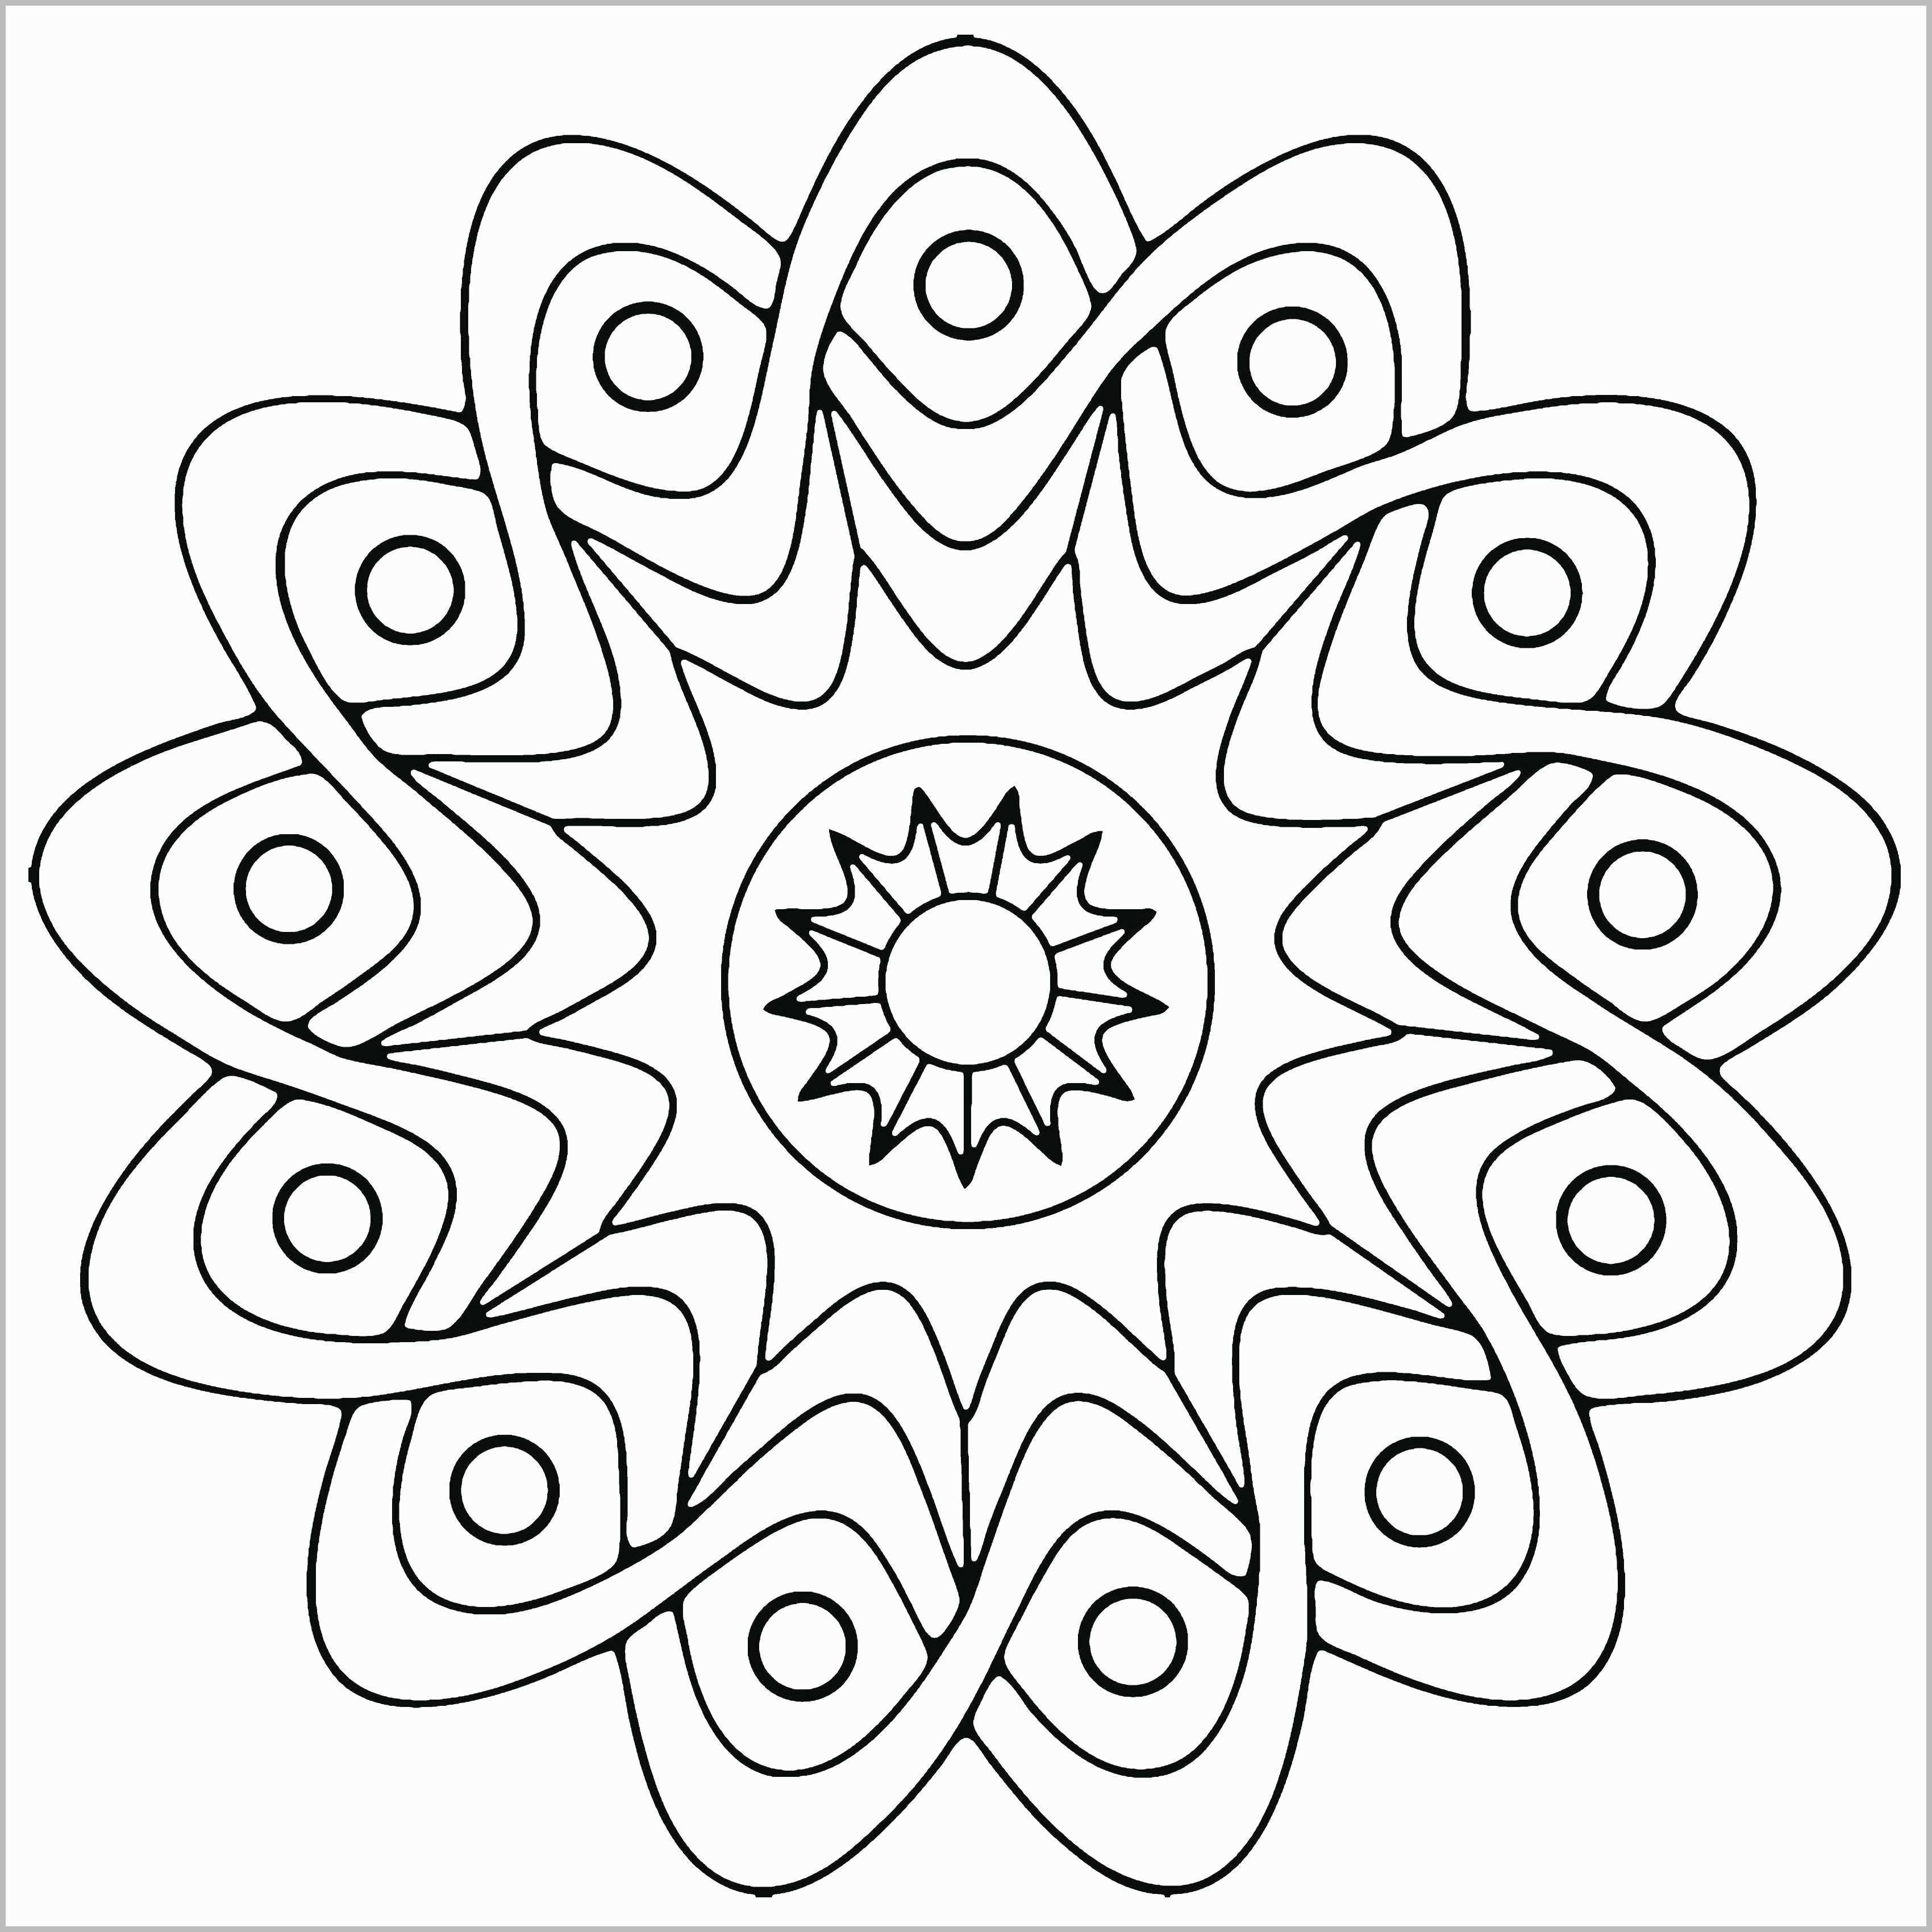 Free Mandala Coloring Pages Printable Mandala Coloring Pages Simple Best Of Free Mandalas For